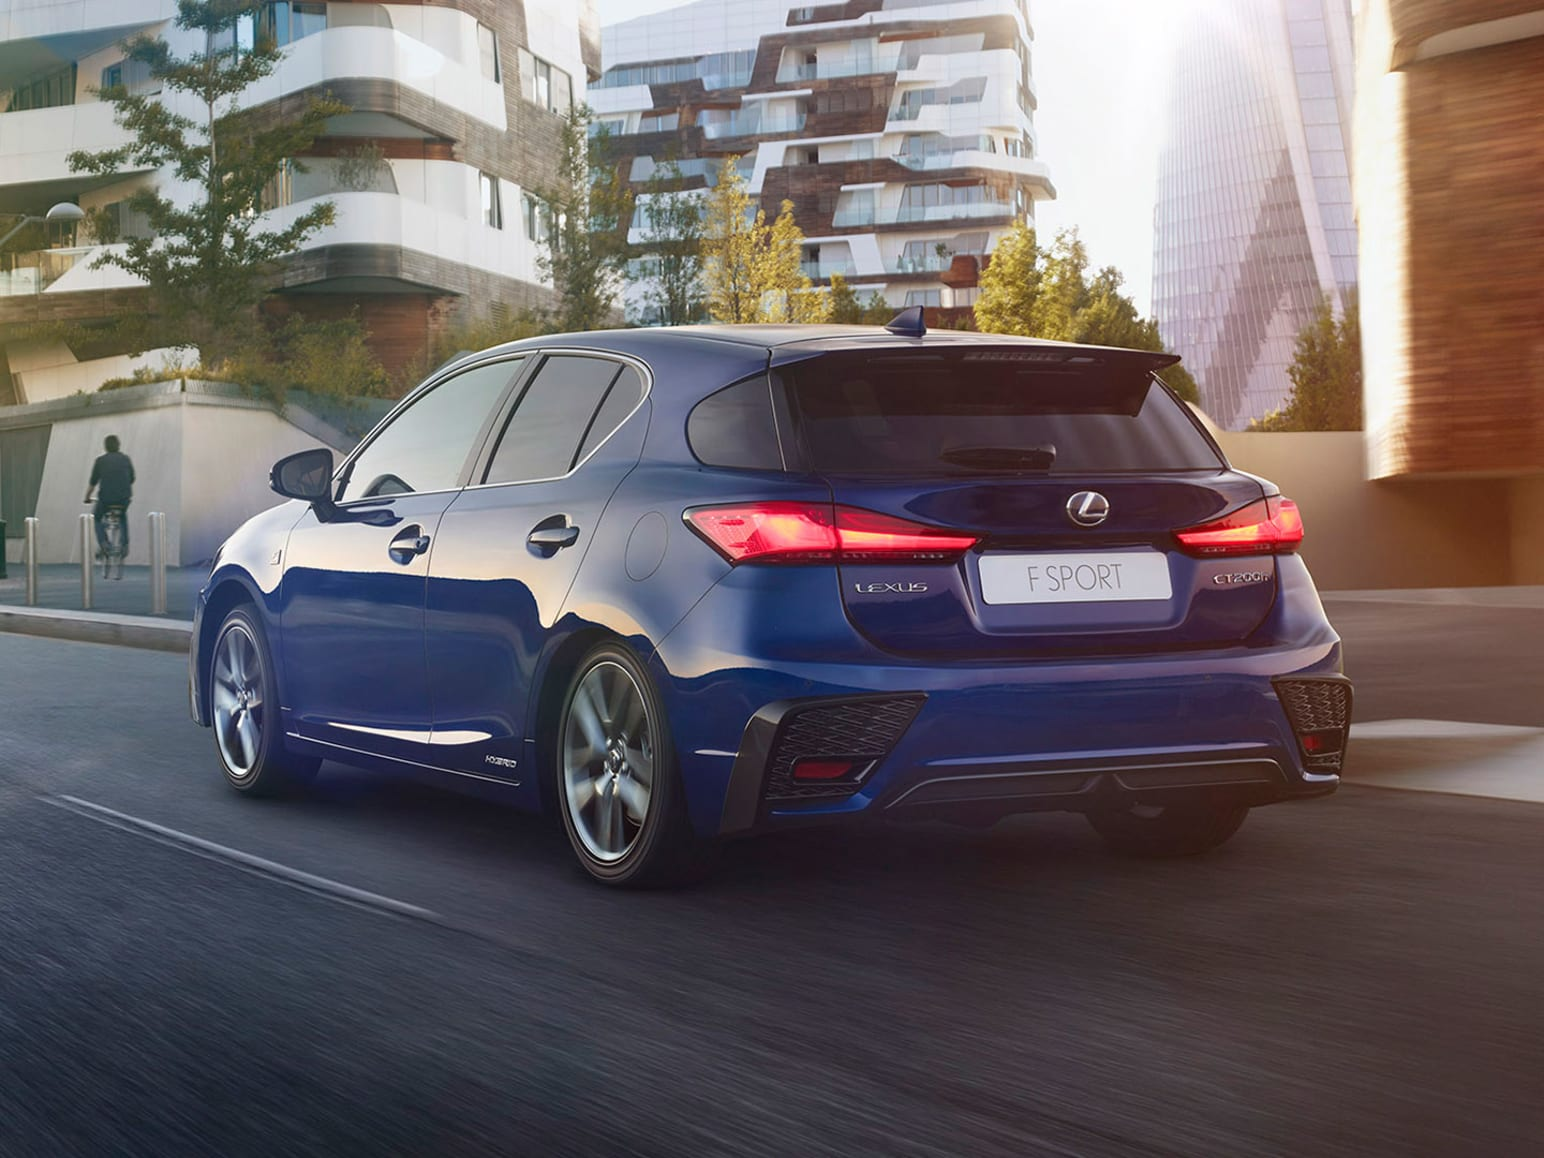 Lexus Ct F Sport >> New Lexus Ct 200h F Sport From 269 Per Month On Pch